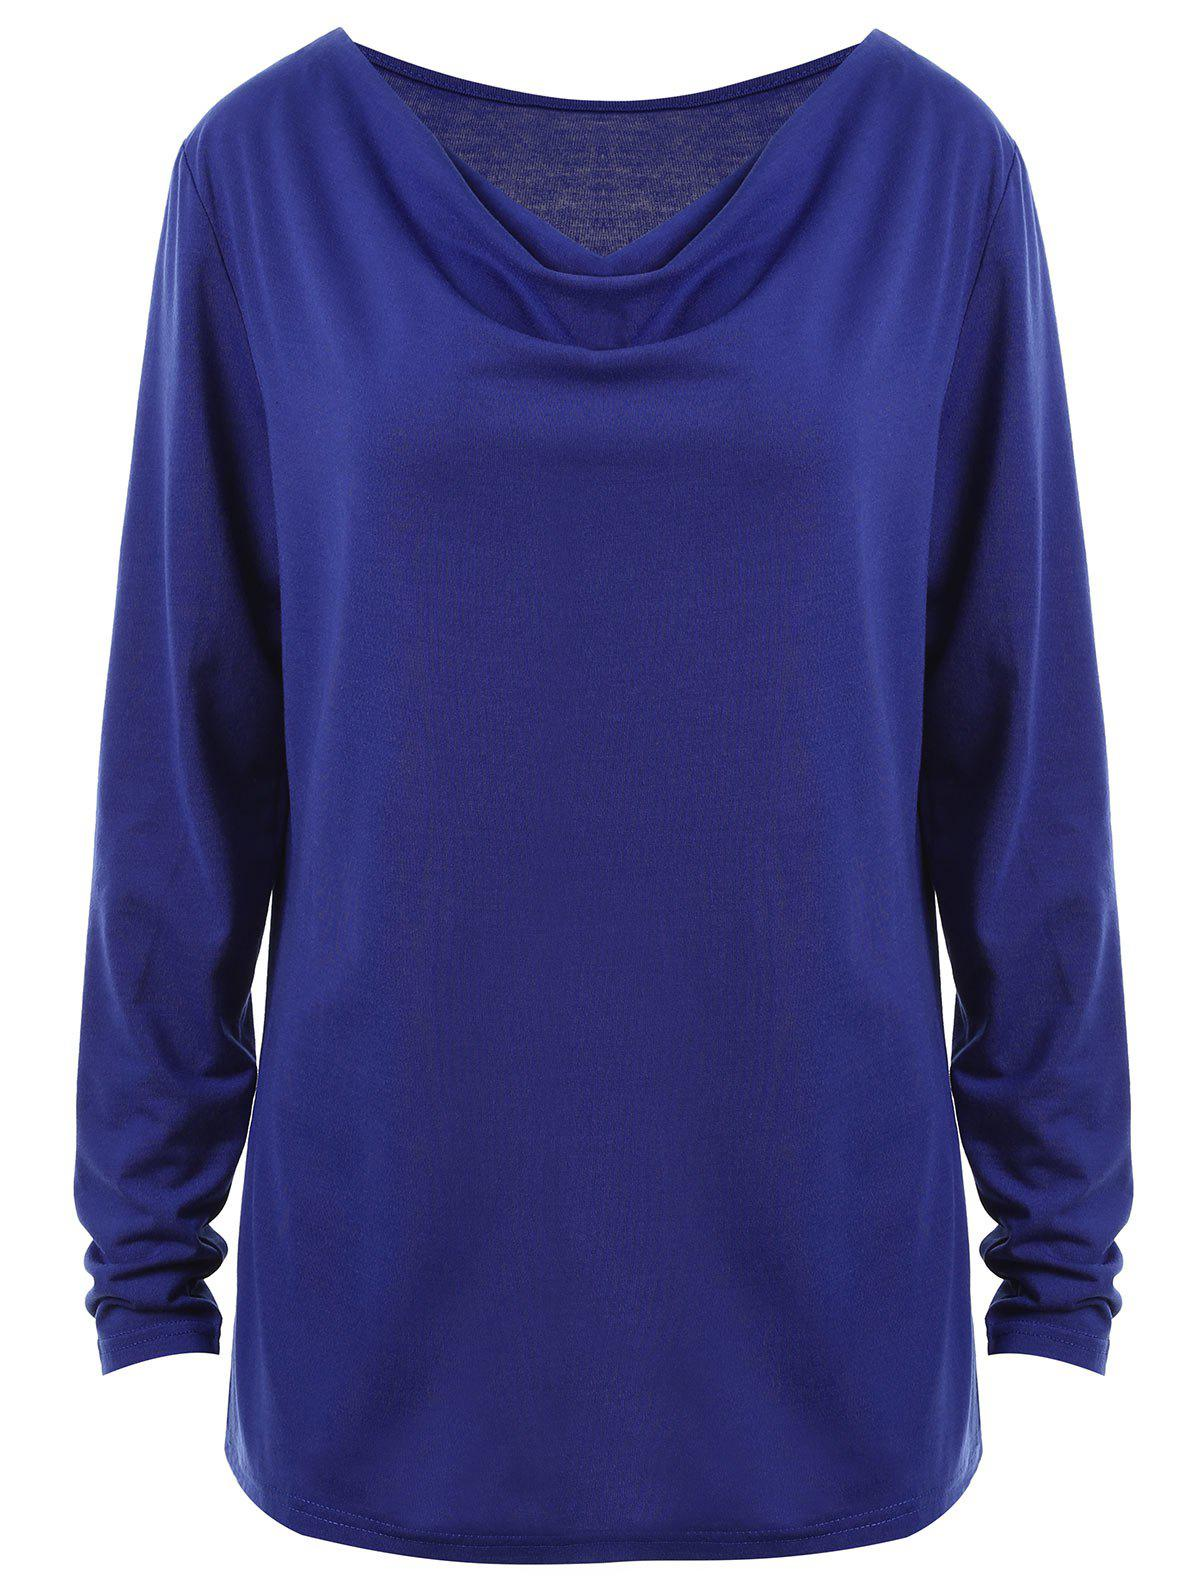 Plus Size Long Sleeve Cowl Neck TeeWOMEN<br><br>Size: 3XL; Color: BLUE; Material: Cotton,Polyester; Shirt Length: Regular; Sleeve Length: Full; Collar: Cowl Neck; Style: Casual; Season: Fall; Pattern Type: Solid; Weight: 0.2800kg; Package Contents: 1 x T-shirt;